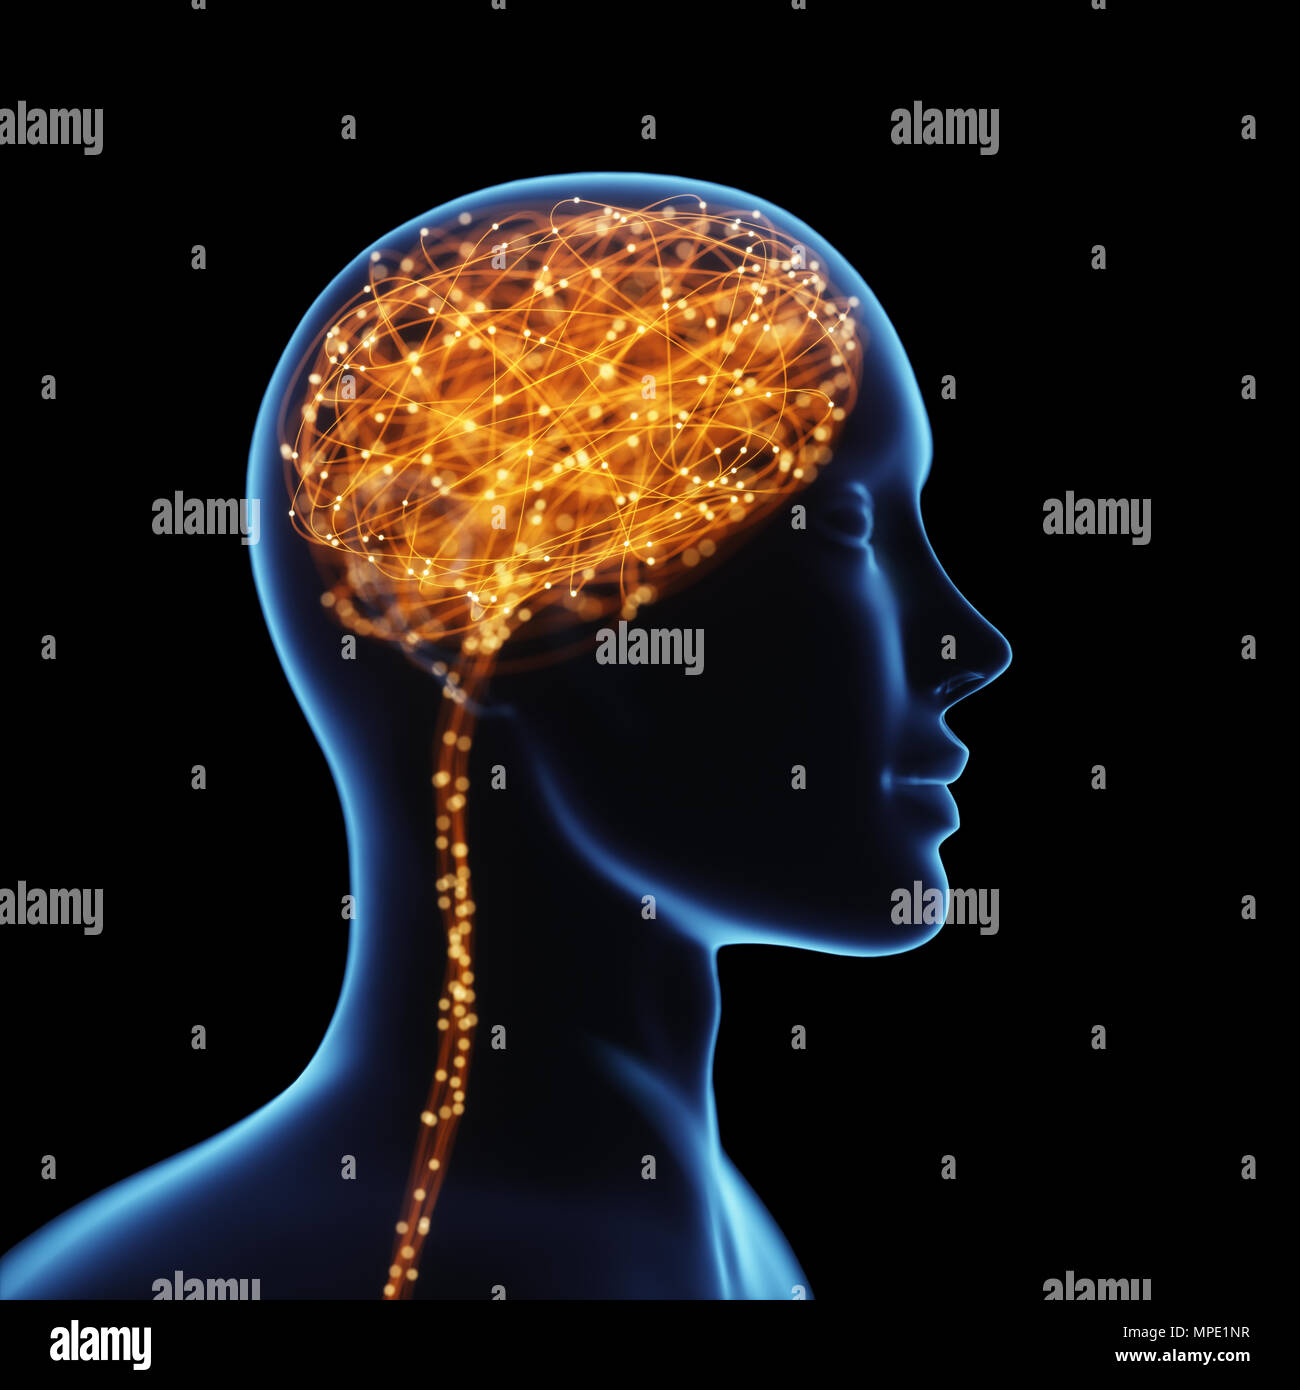 3D illustration. X-ray of the head and human brain in concept of neural connections and electrical pulses. Sparkles inside the brain. Powerful mind. Stock Photo